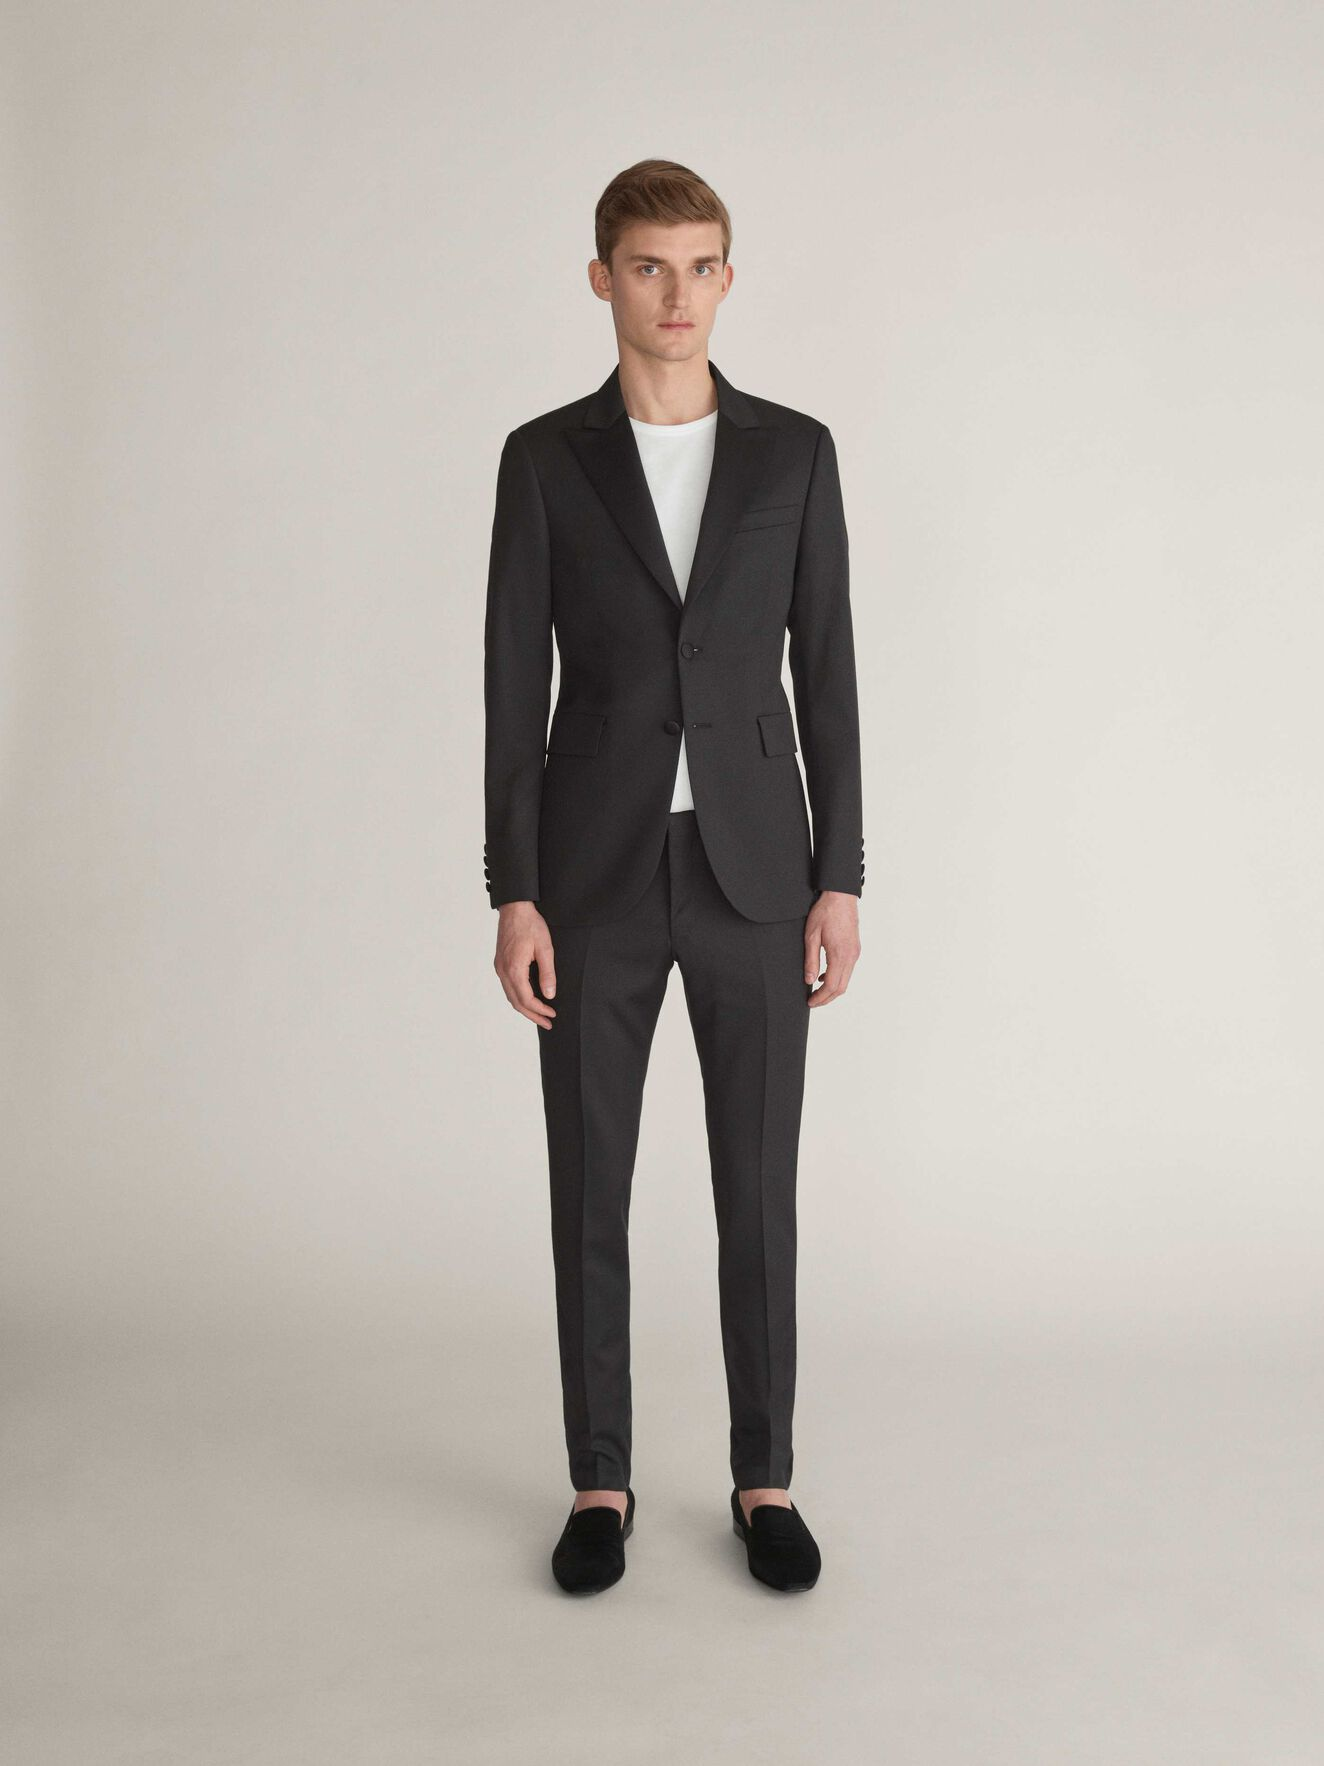 1903 Tuxedo Blazer in Black from Tiger of Sweden